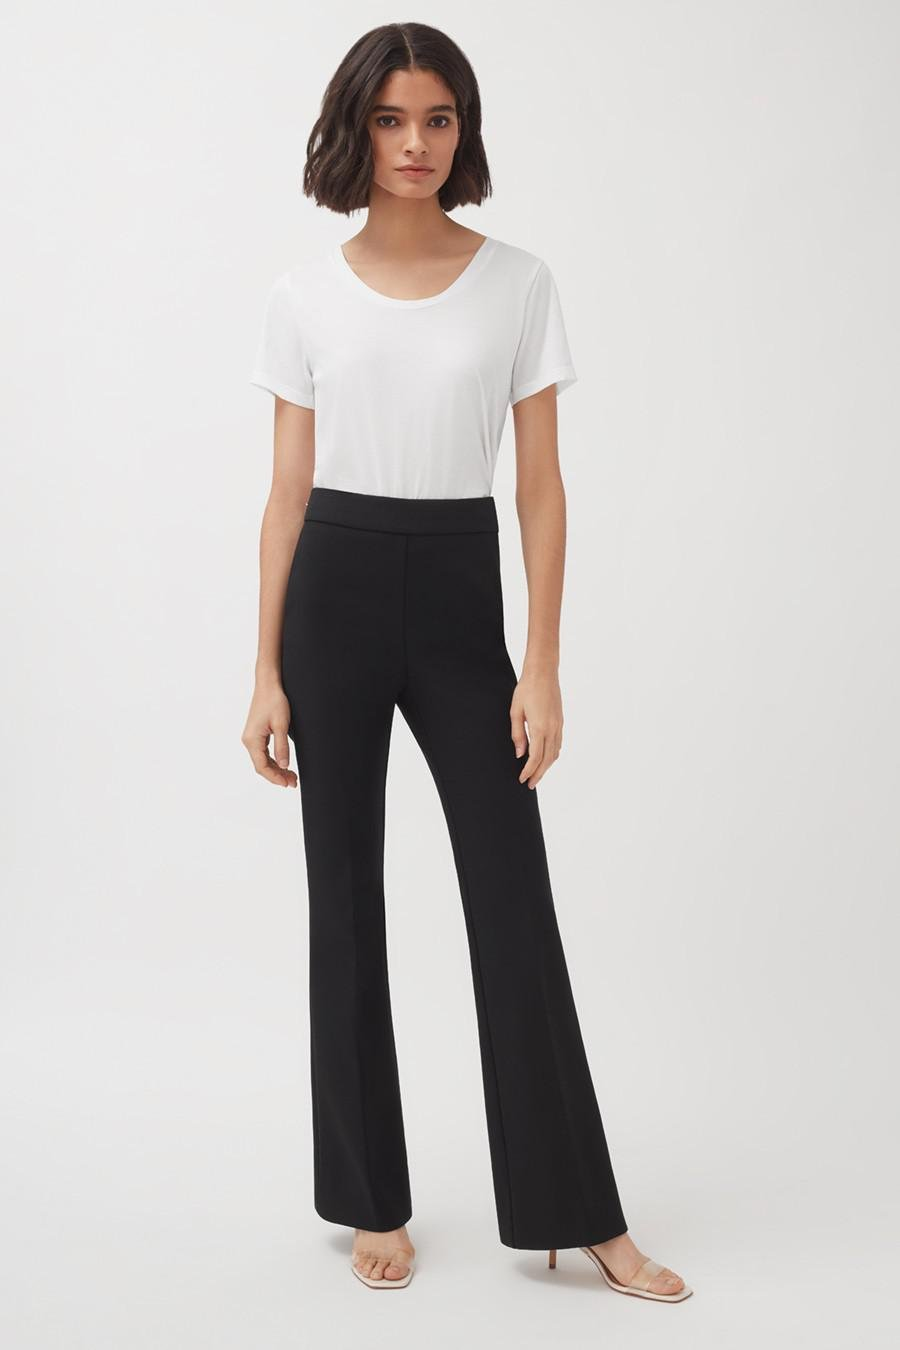 Women's Cotton Twill Flared Pant in Black | Size: 1